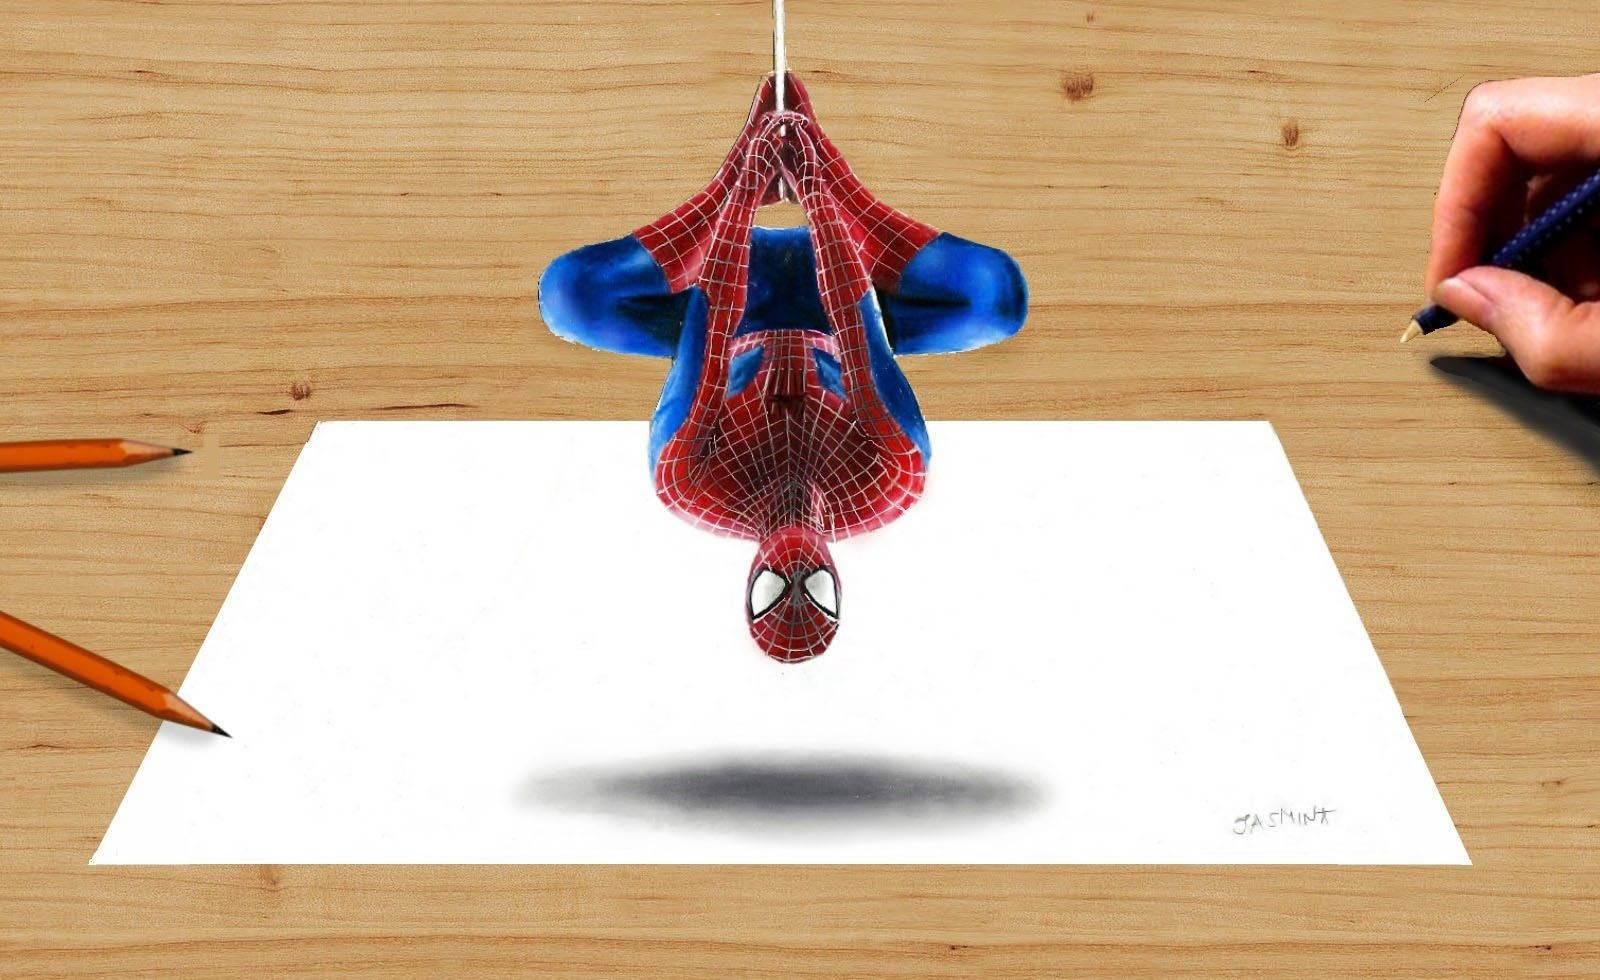 3D Pencil Drawing: the Amazing Spider-Man 2 Speed Draw | How to Draw Mar...